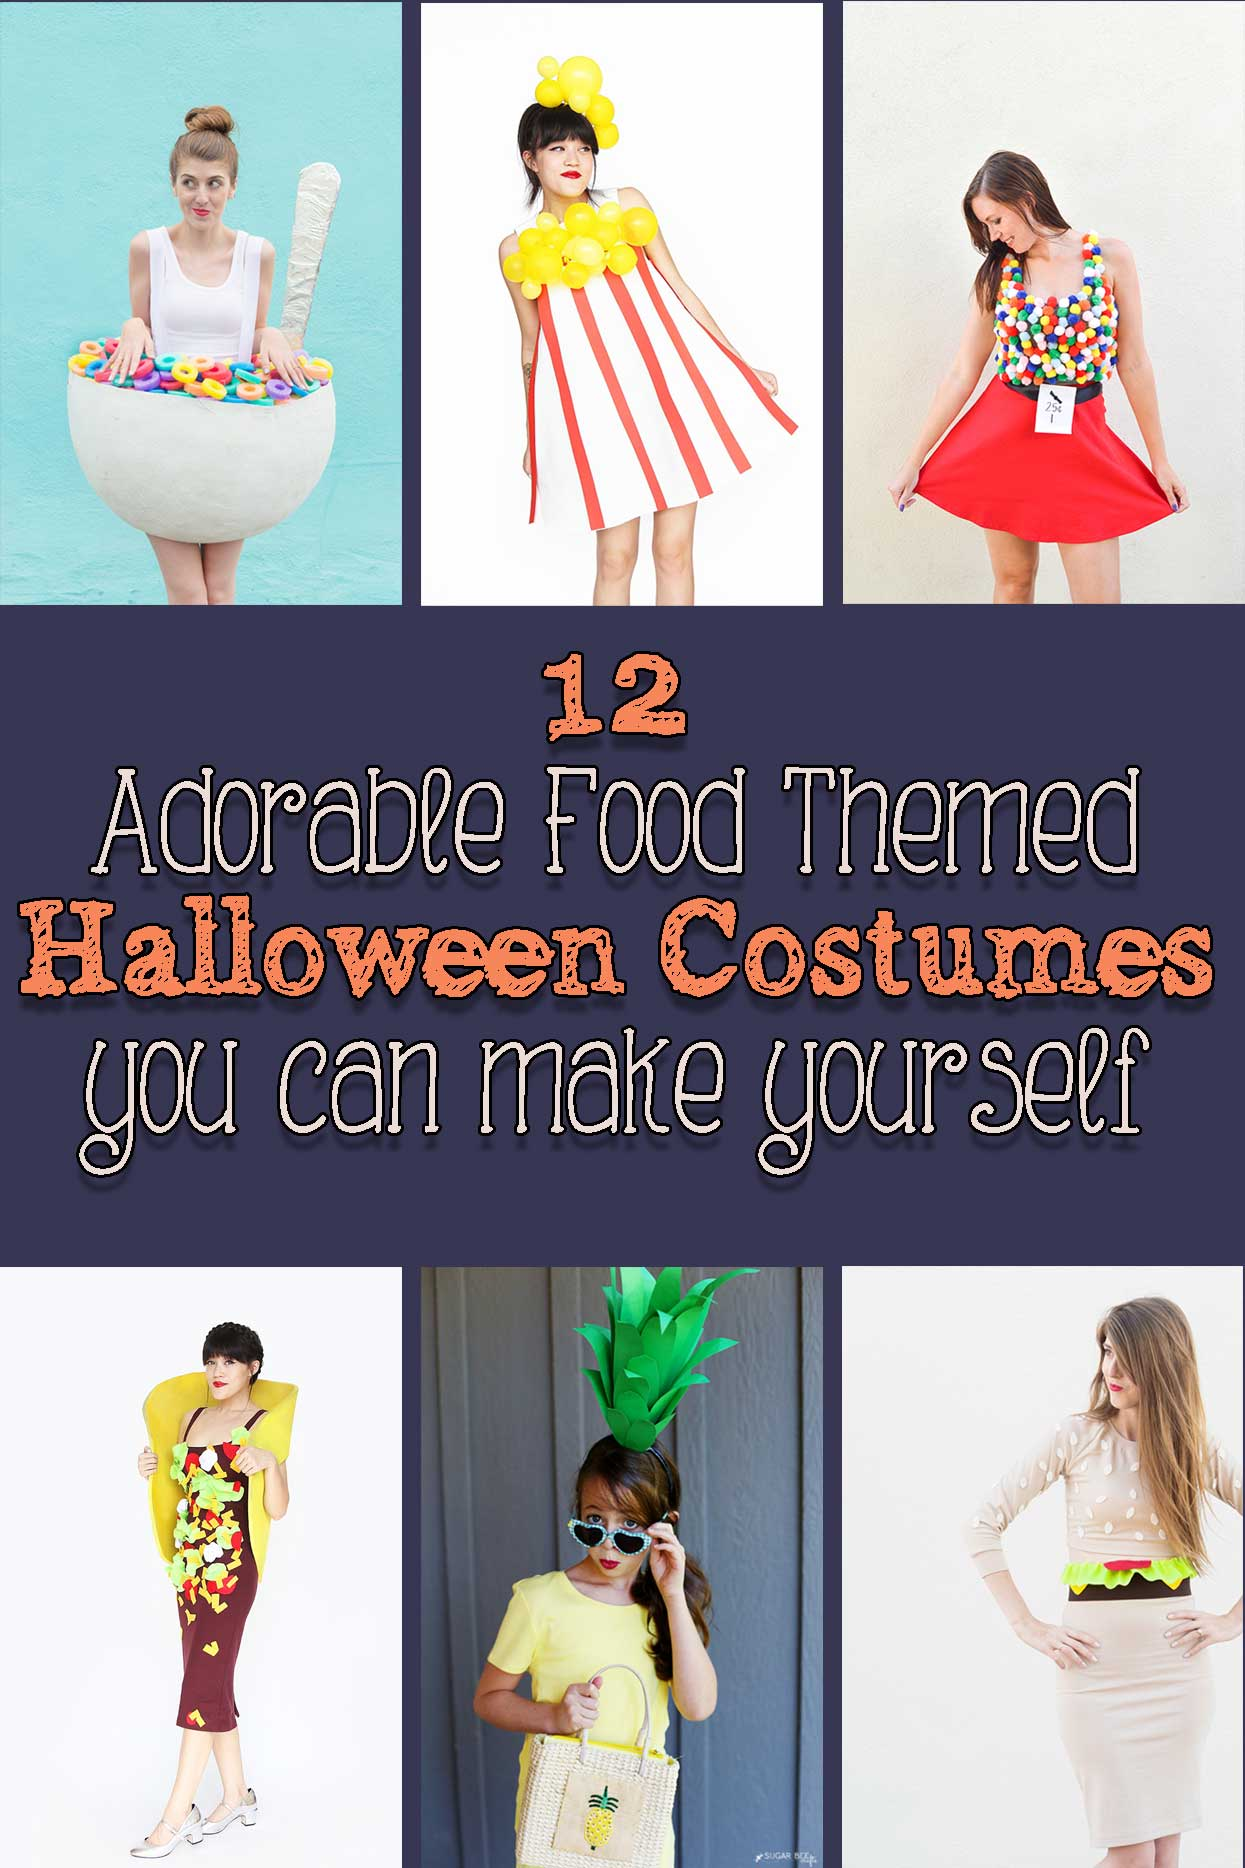 Food halloween costumes